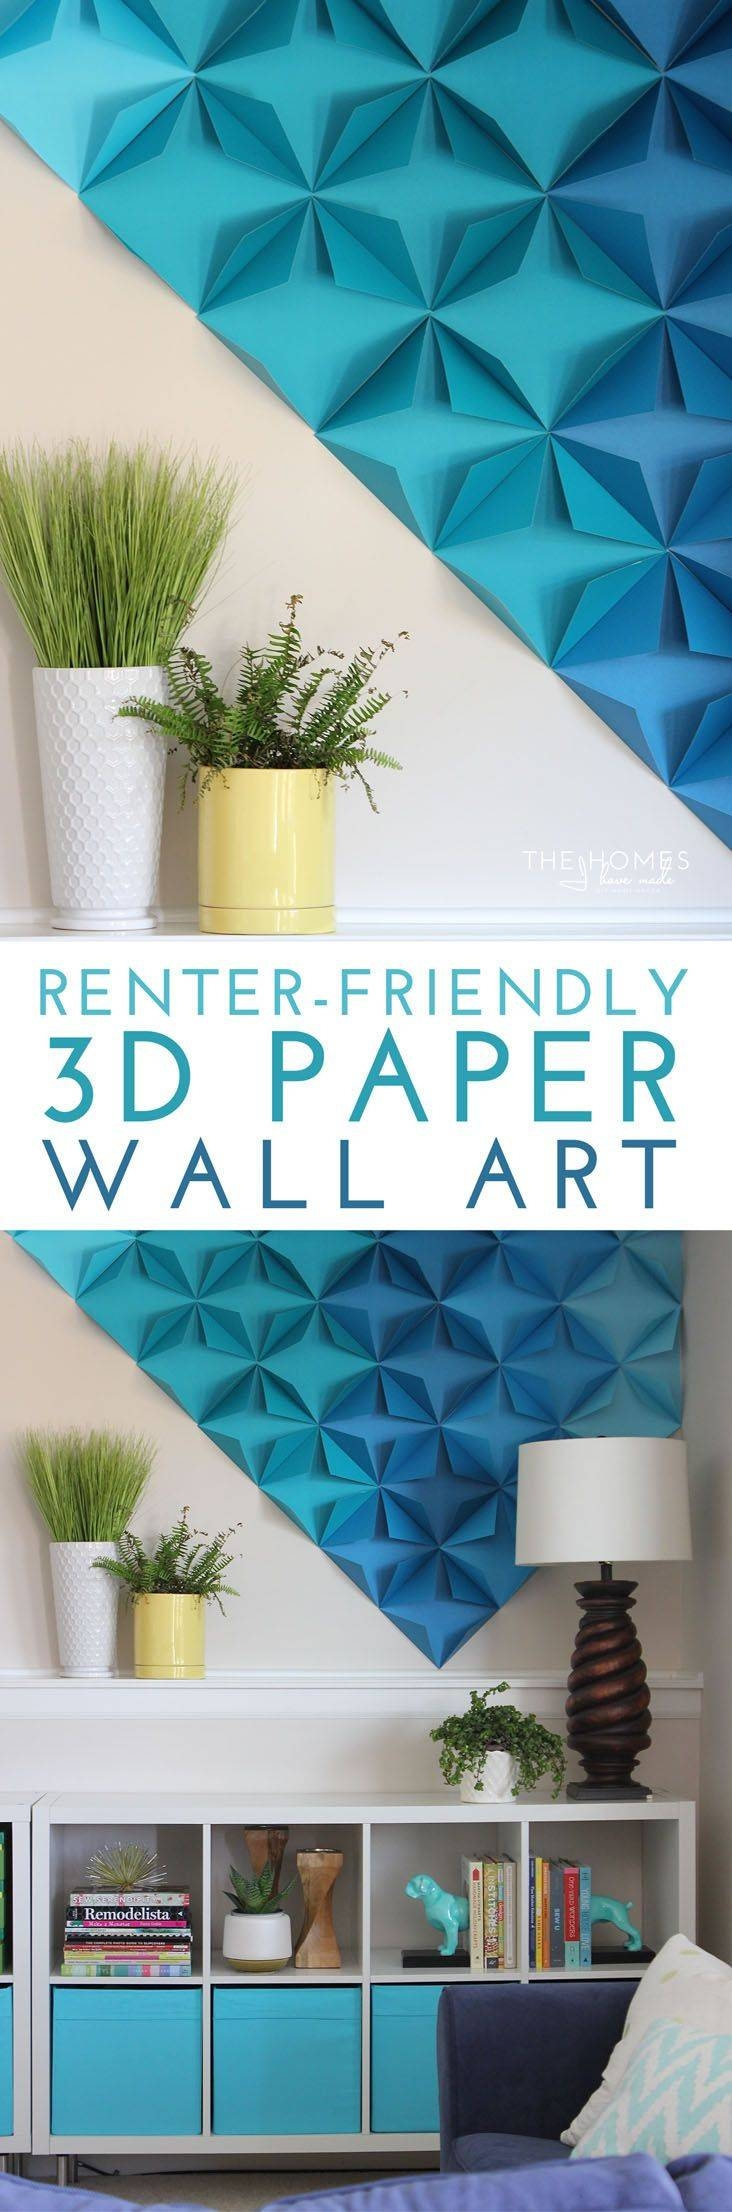 25+ Unique Paper Wall Decor Ideas On Pinterest | Diy Wall Flowers With Current Gold Coast 3D Wall Art (View 4 of 20)